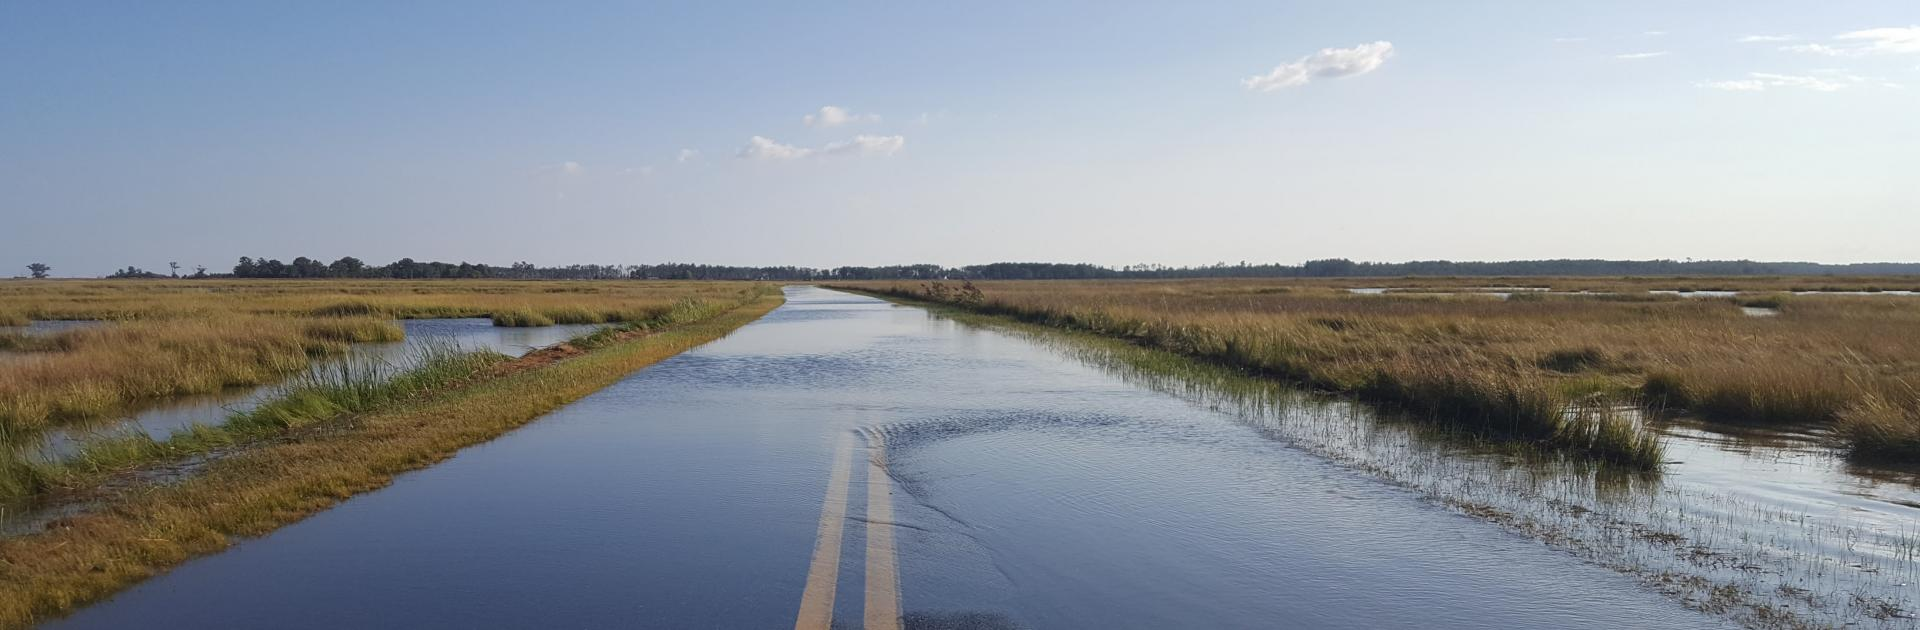 View of flooded road in Blackwater Refuge, Eastern Shore of Maryland